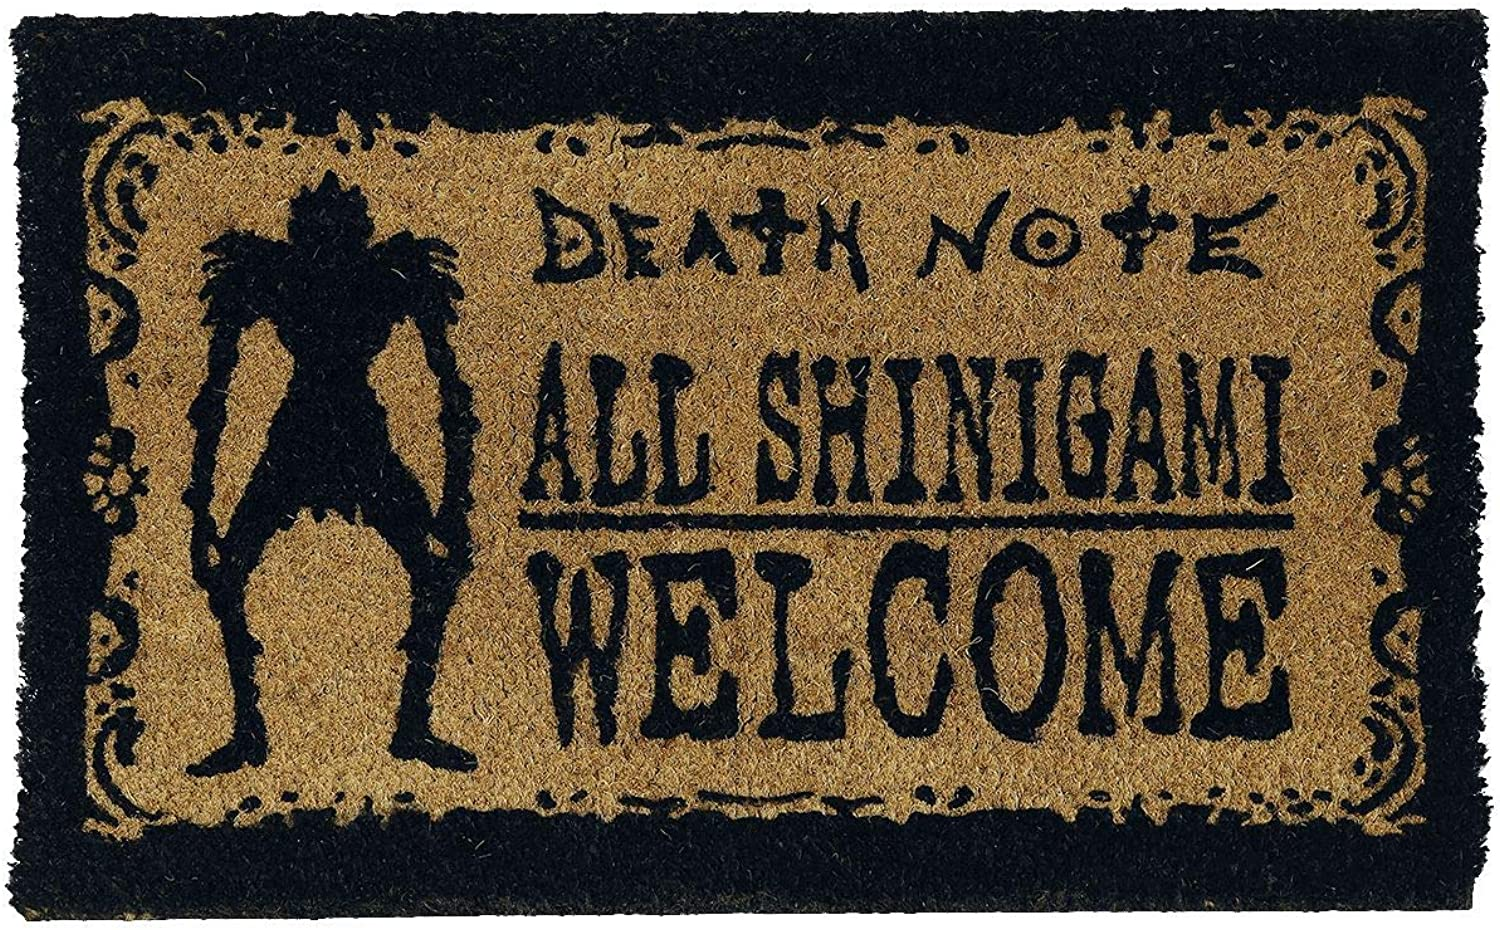 Pyramid International Death Note Doormat Shinigami Welcome 40 x 60 cm Tappeti